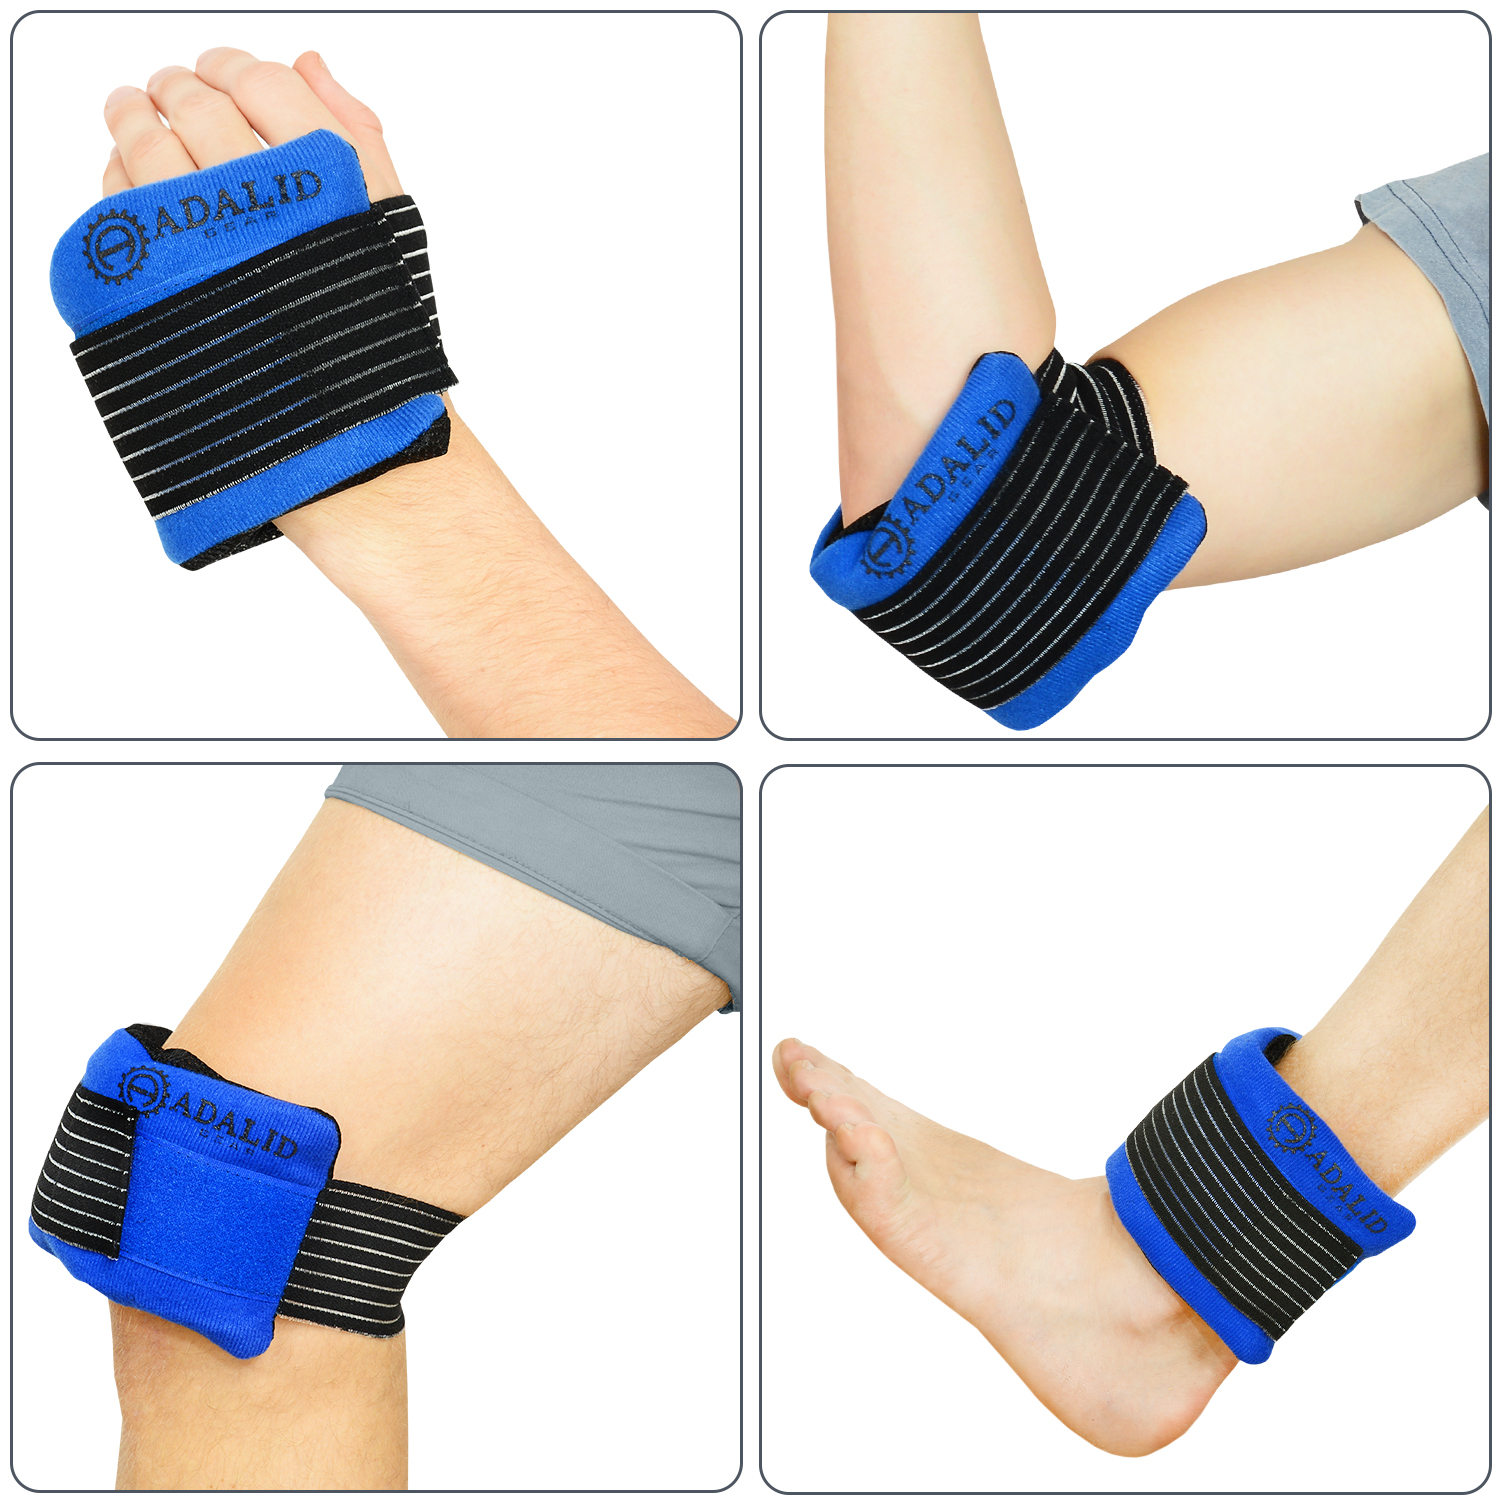 Top 10 Best Gel Ice Bags for Injuries Comparison